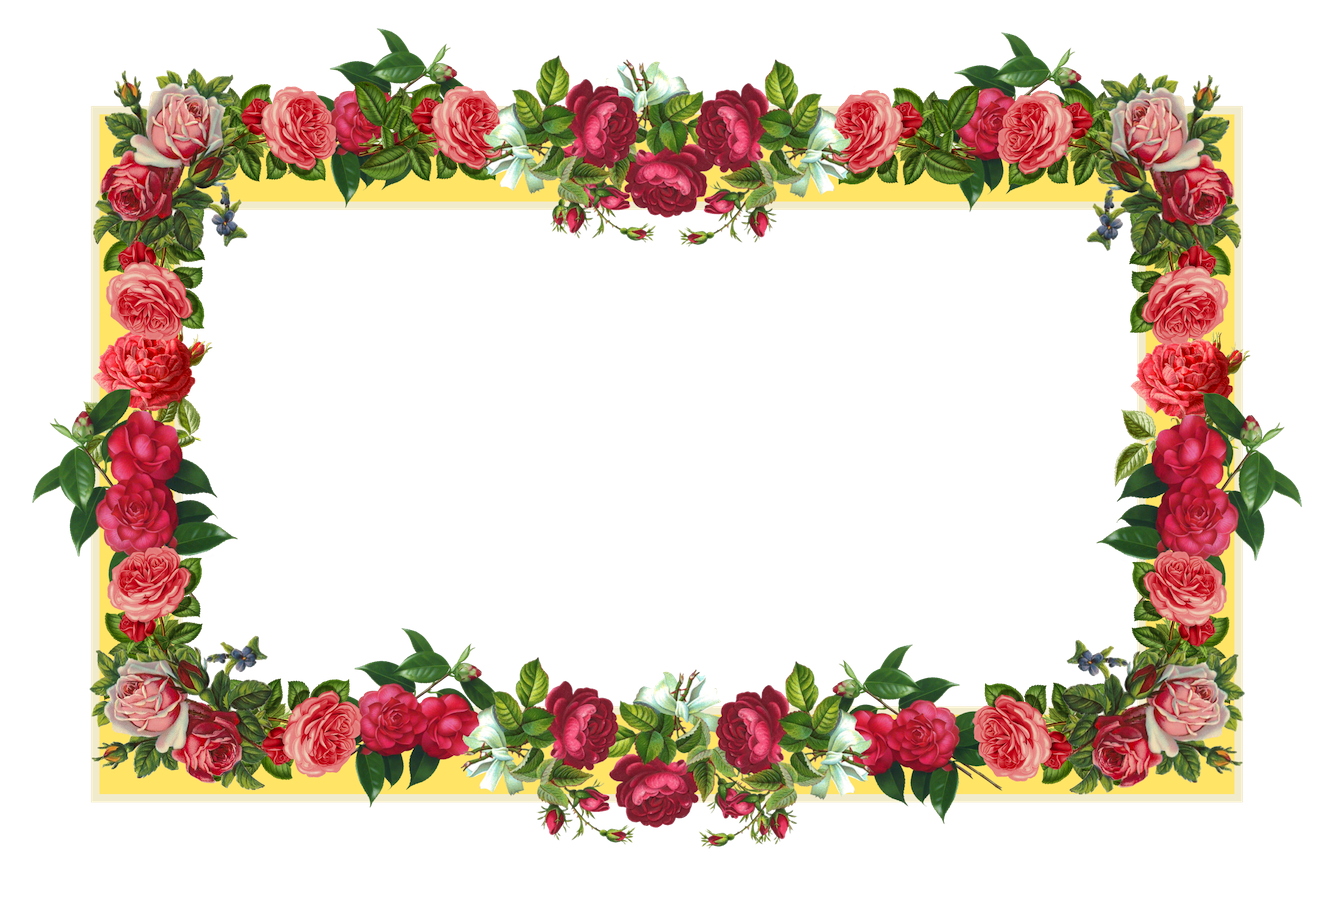 1334x900 Download Flowers Borders Free Png Photo Images And Clipart